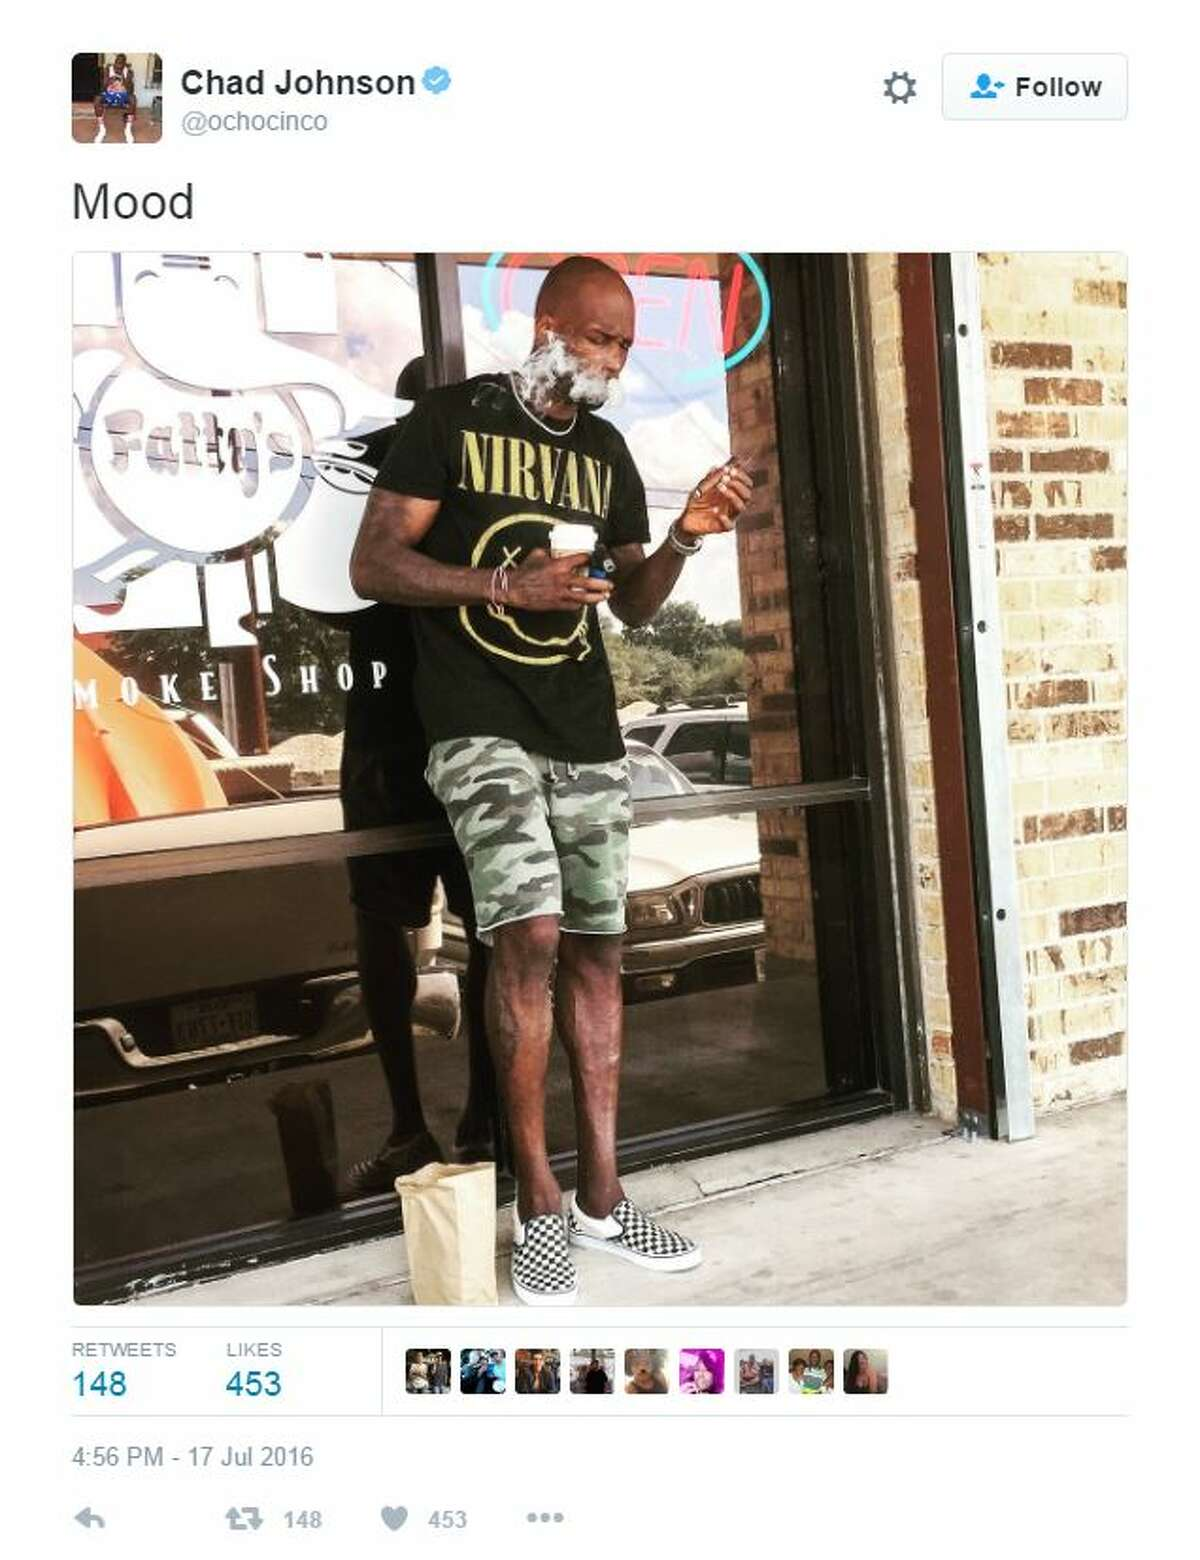 """Former Dallas Cowboys star Chad Johnson, better known as """"Ochocinco,"""" was spotted in San Marcos in July, where he played FIFA with Texas State University students and smoked cigars at Fatty's Smoke Shop."""